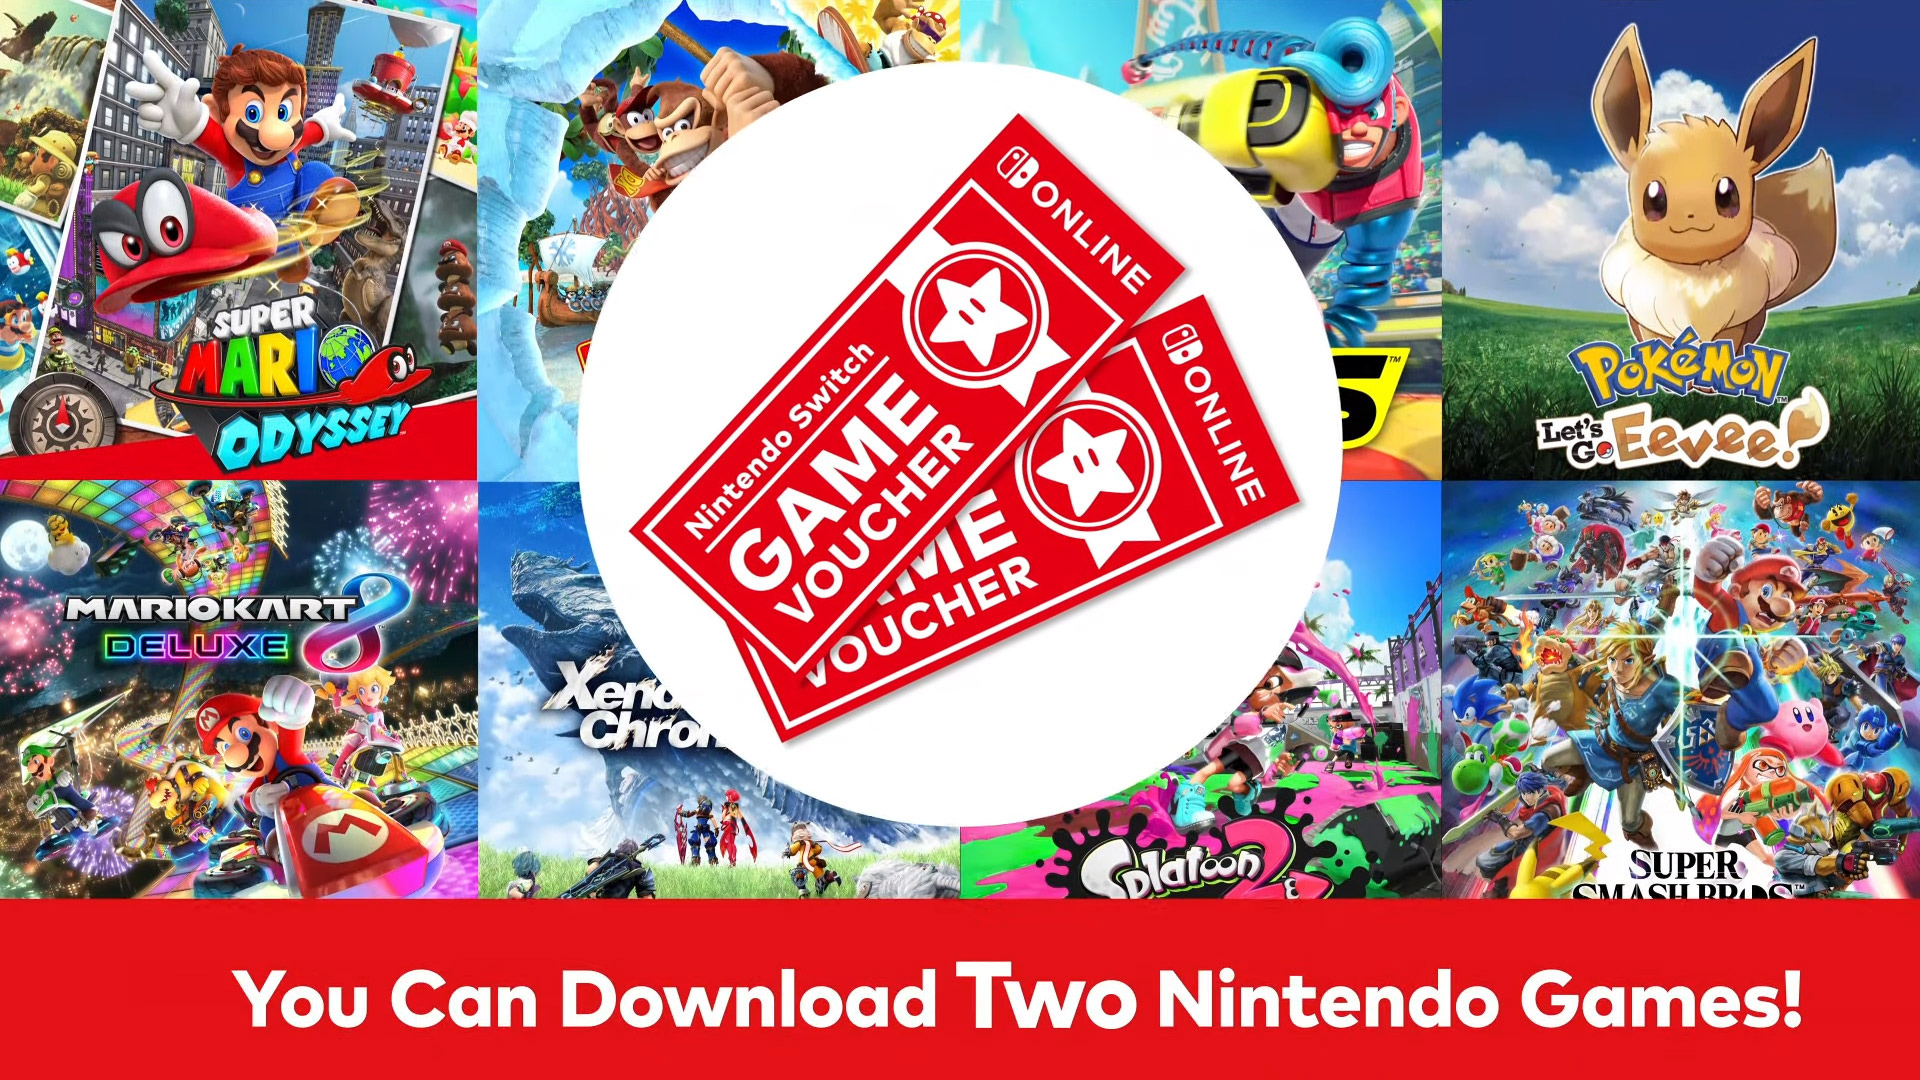 Don't forget to use your Nintendo Switch vouchers if you're still hanging onto any screenshot